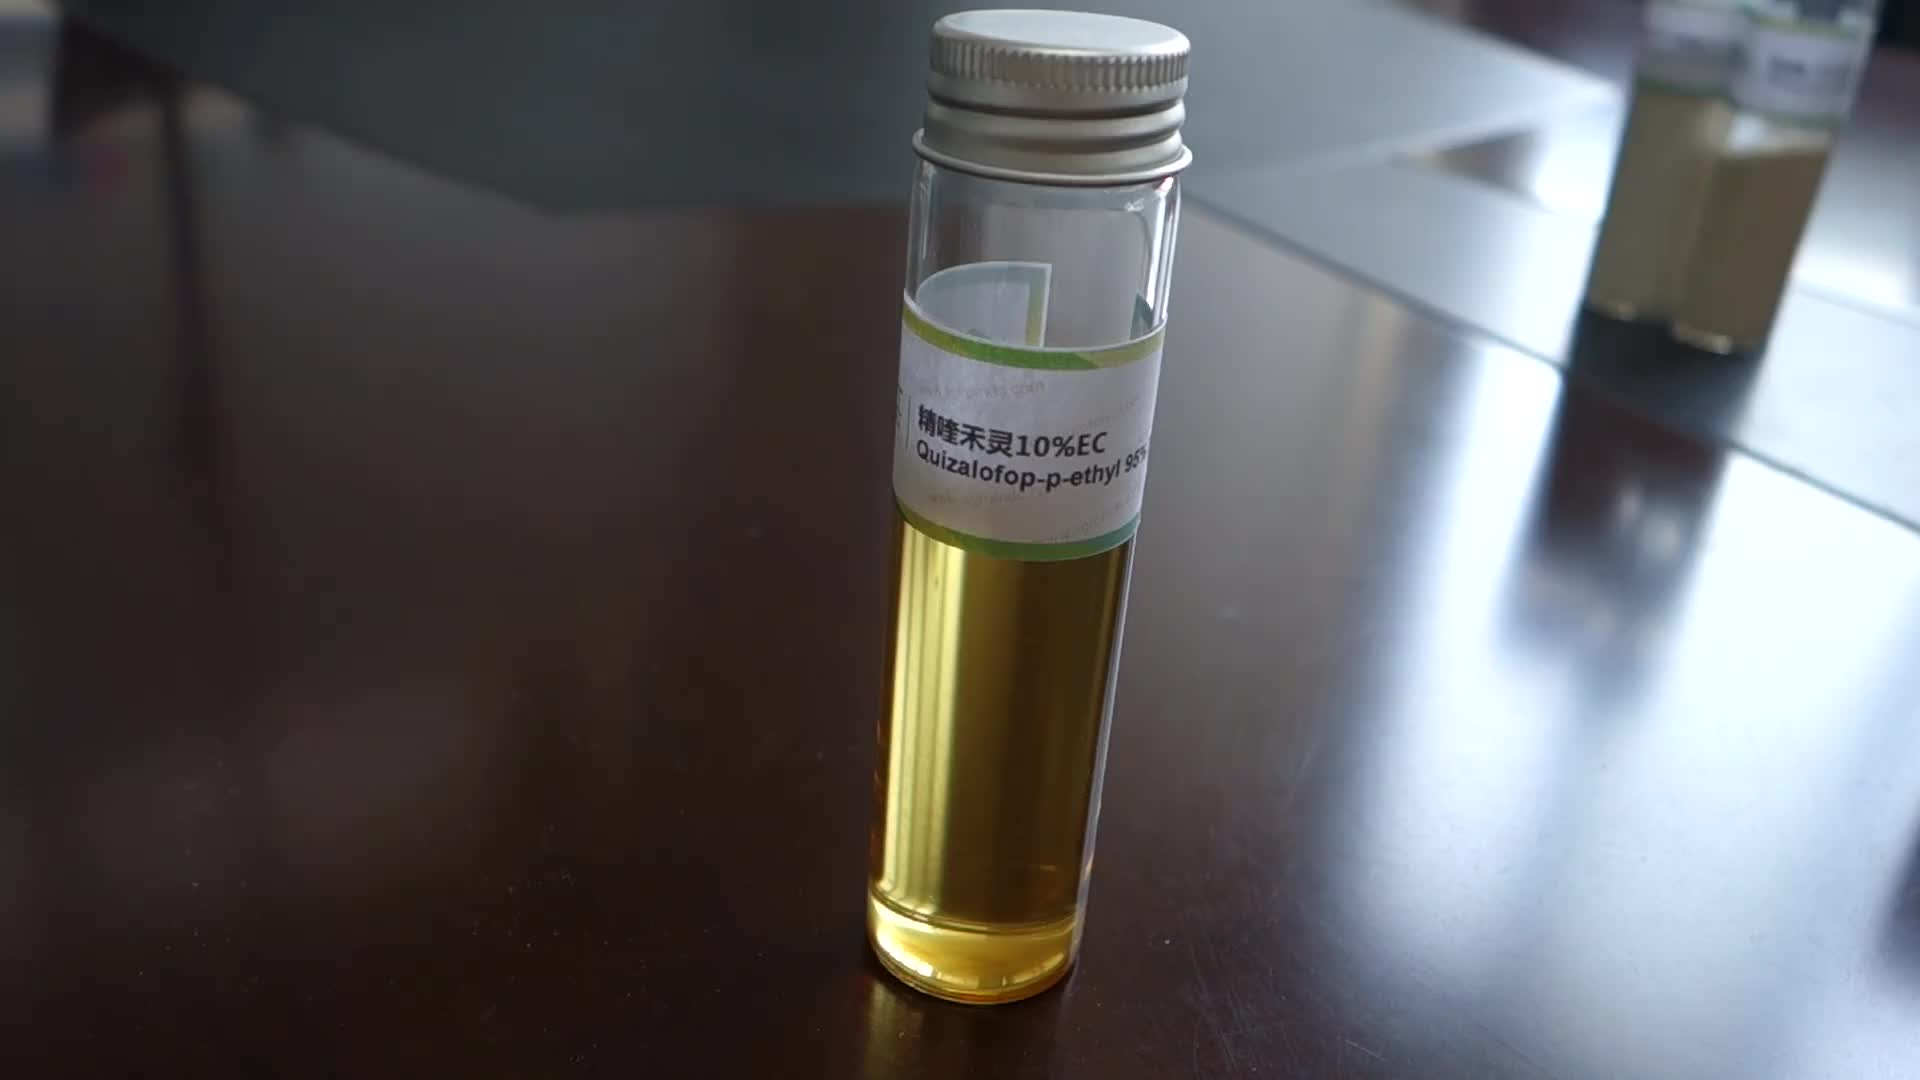 Herbicide Quizalofop-p-ethyl 5% 10% EC with safenr High efficacy pesticide agrochemical